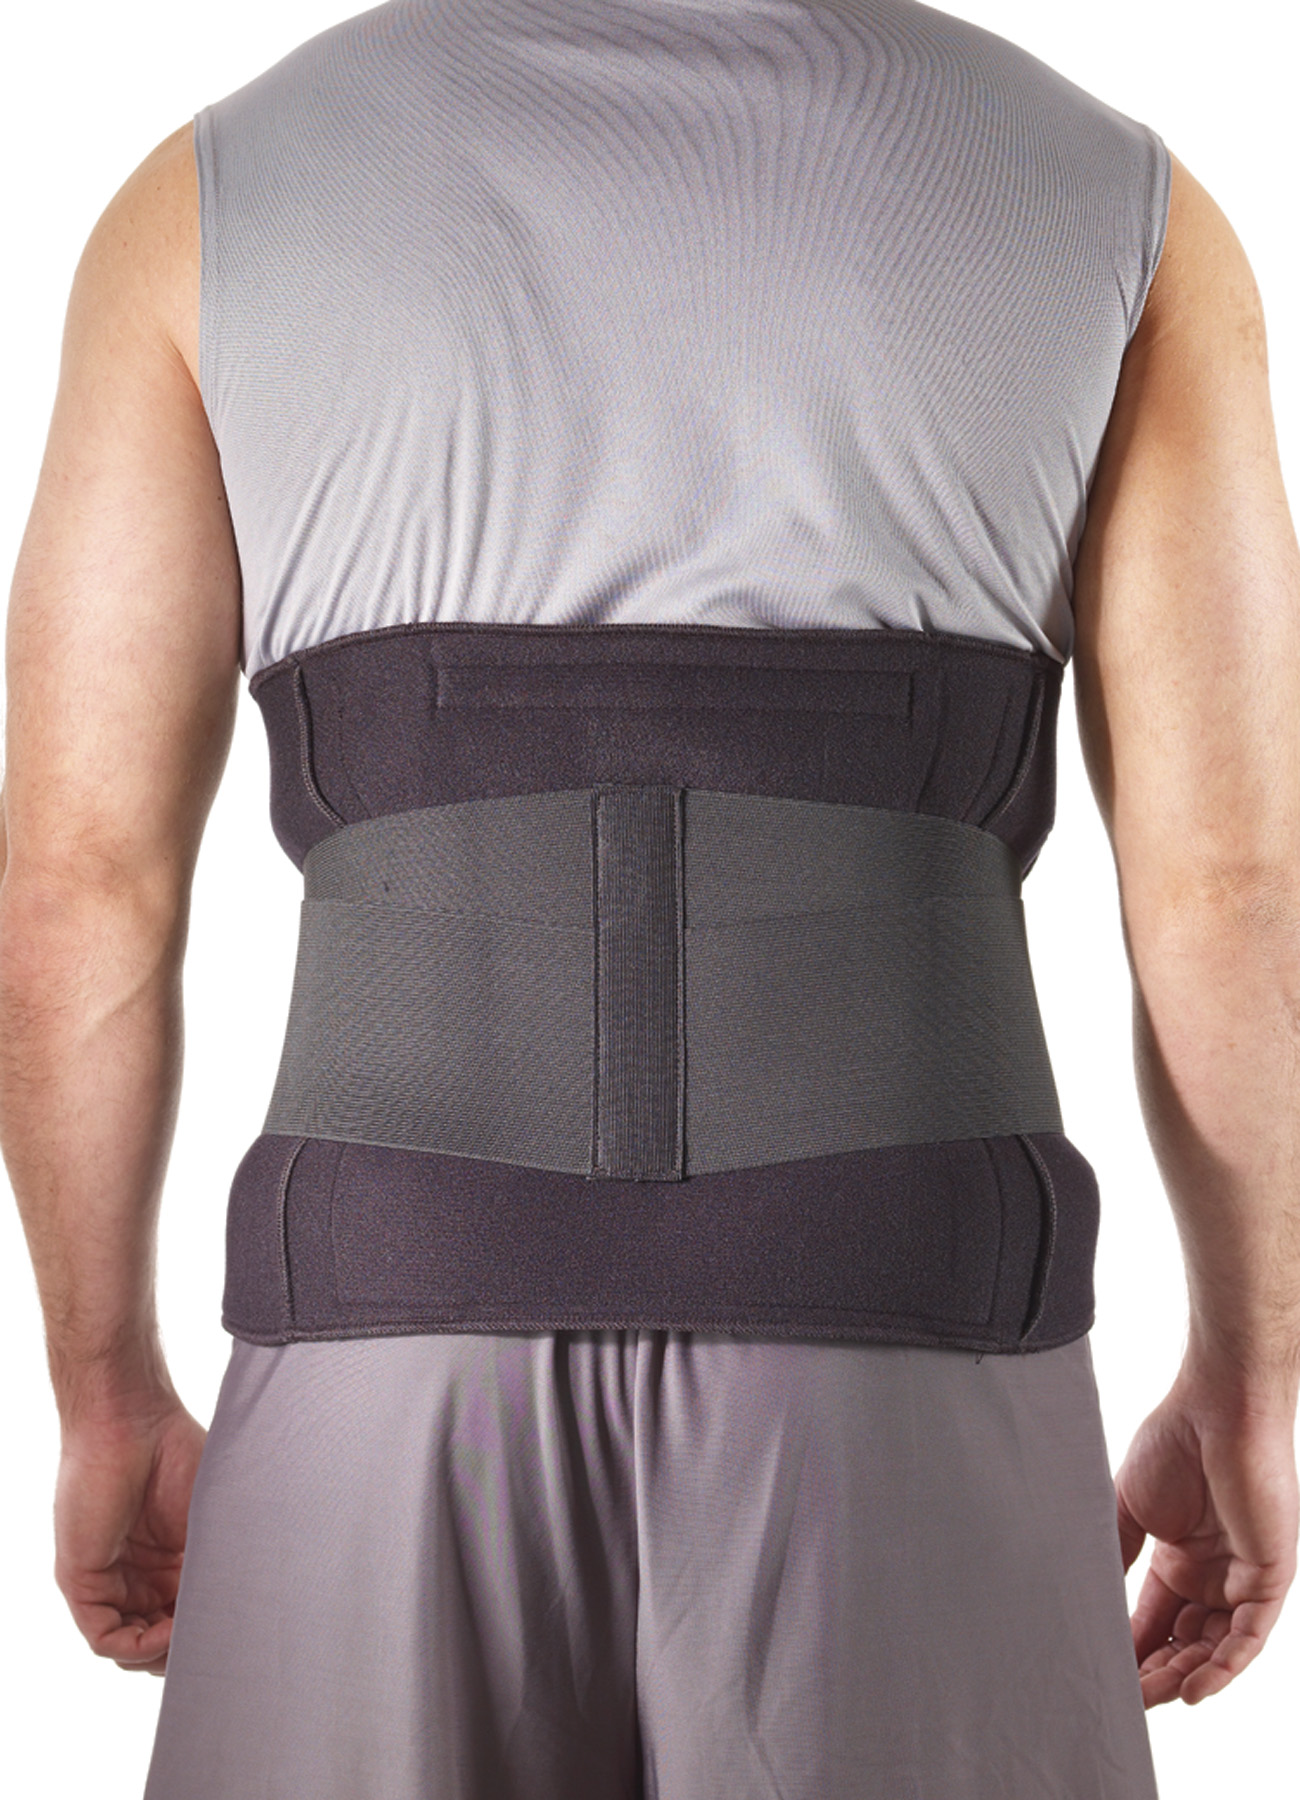 Cryotherm Back Wrap